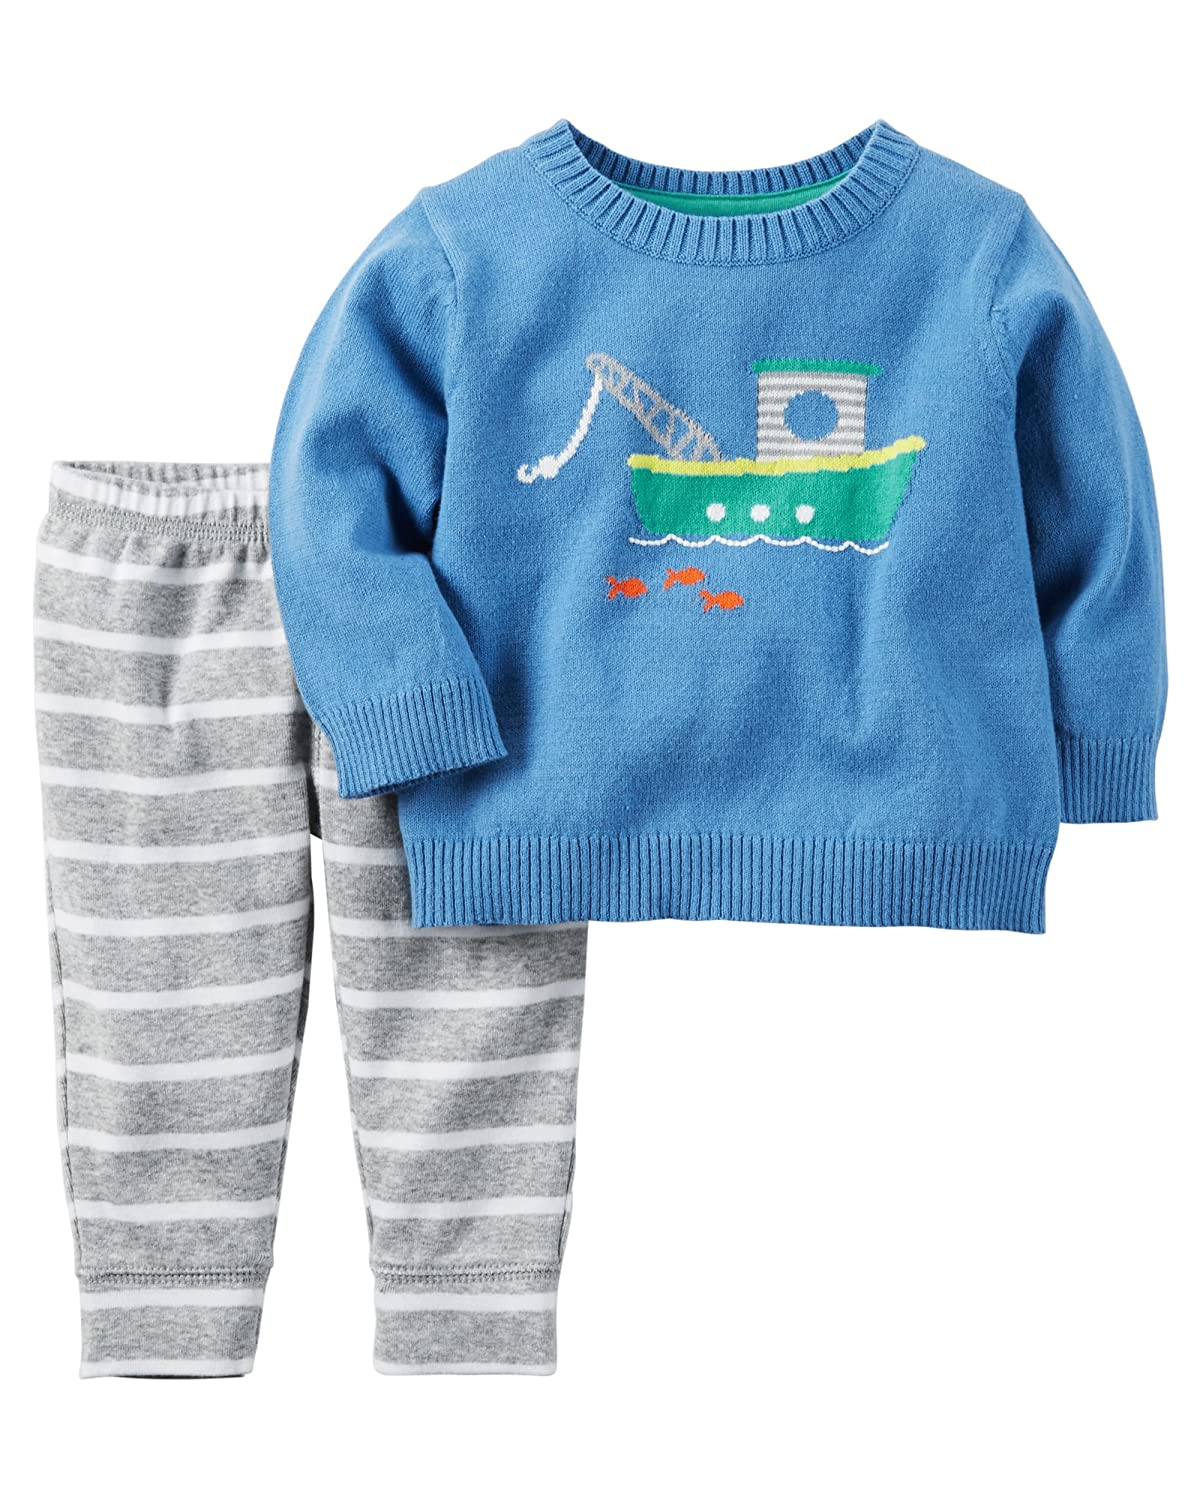 817b13e63 Amazon.com: Carter's Baby Boys' 2-Piece Tugboat Sweater and Pants Set:  Clothing